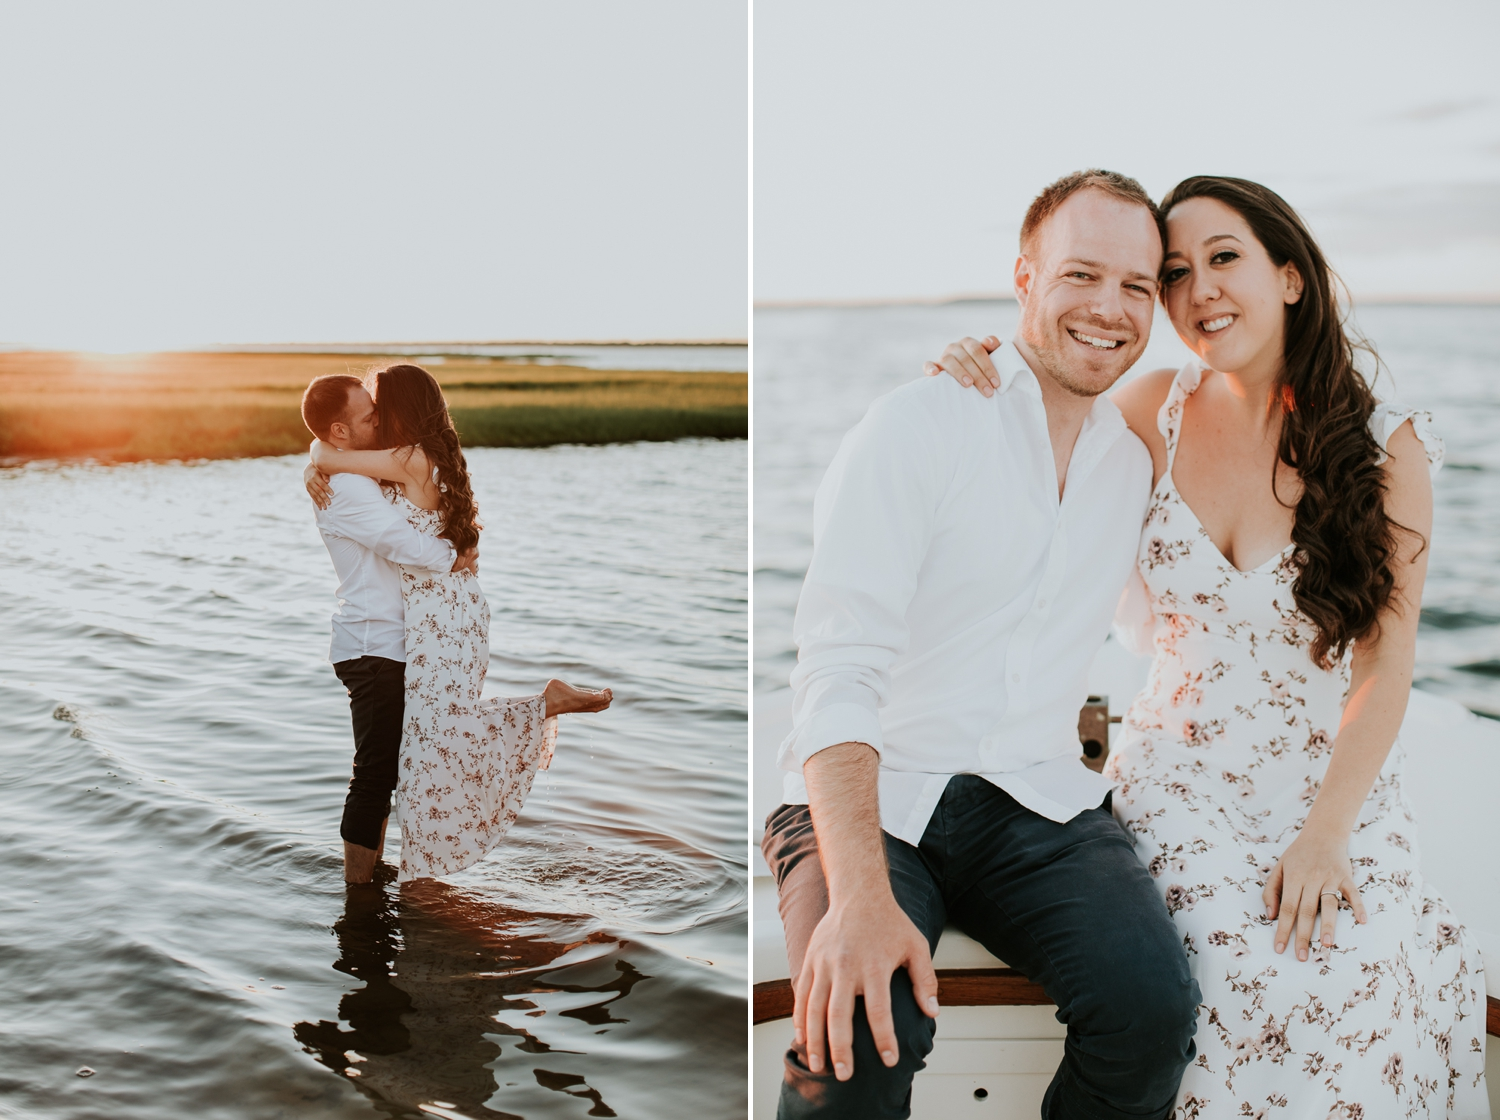 ho-hum-beach-boat-ride-engagement-photography-bellport-new-york 37.jpg